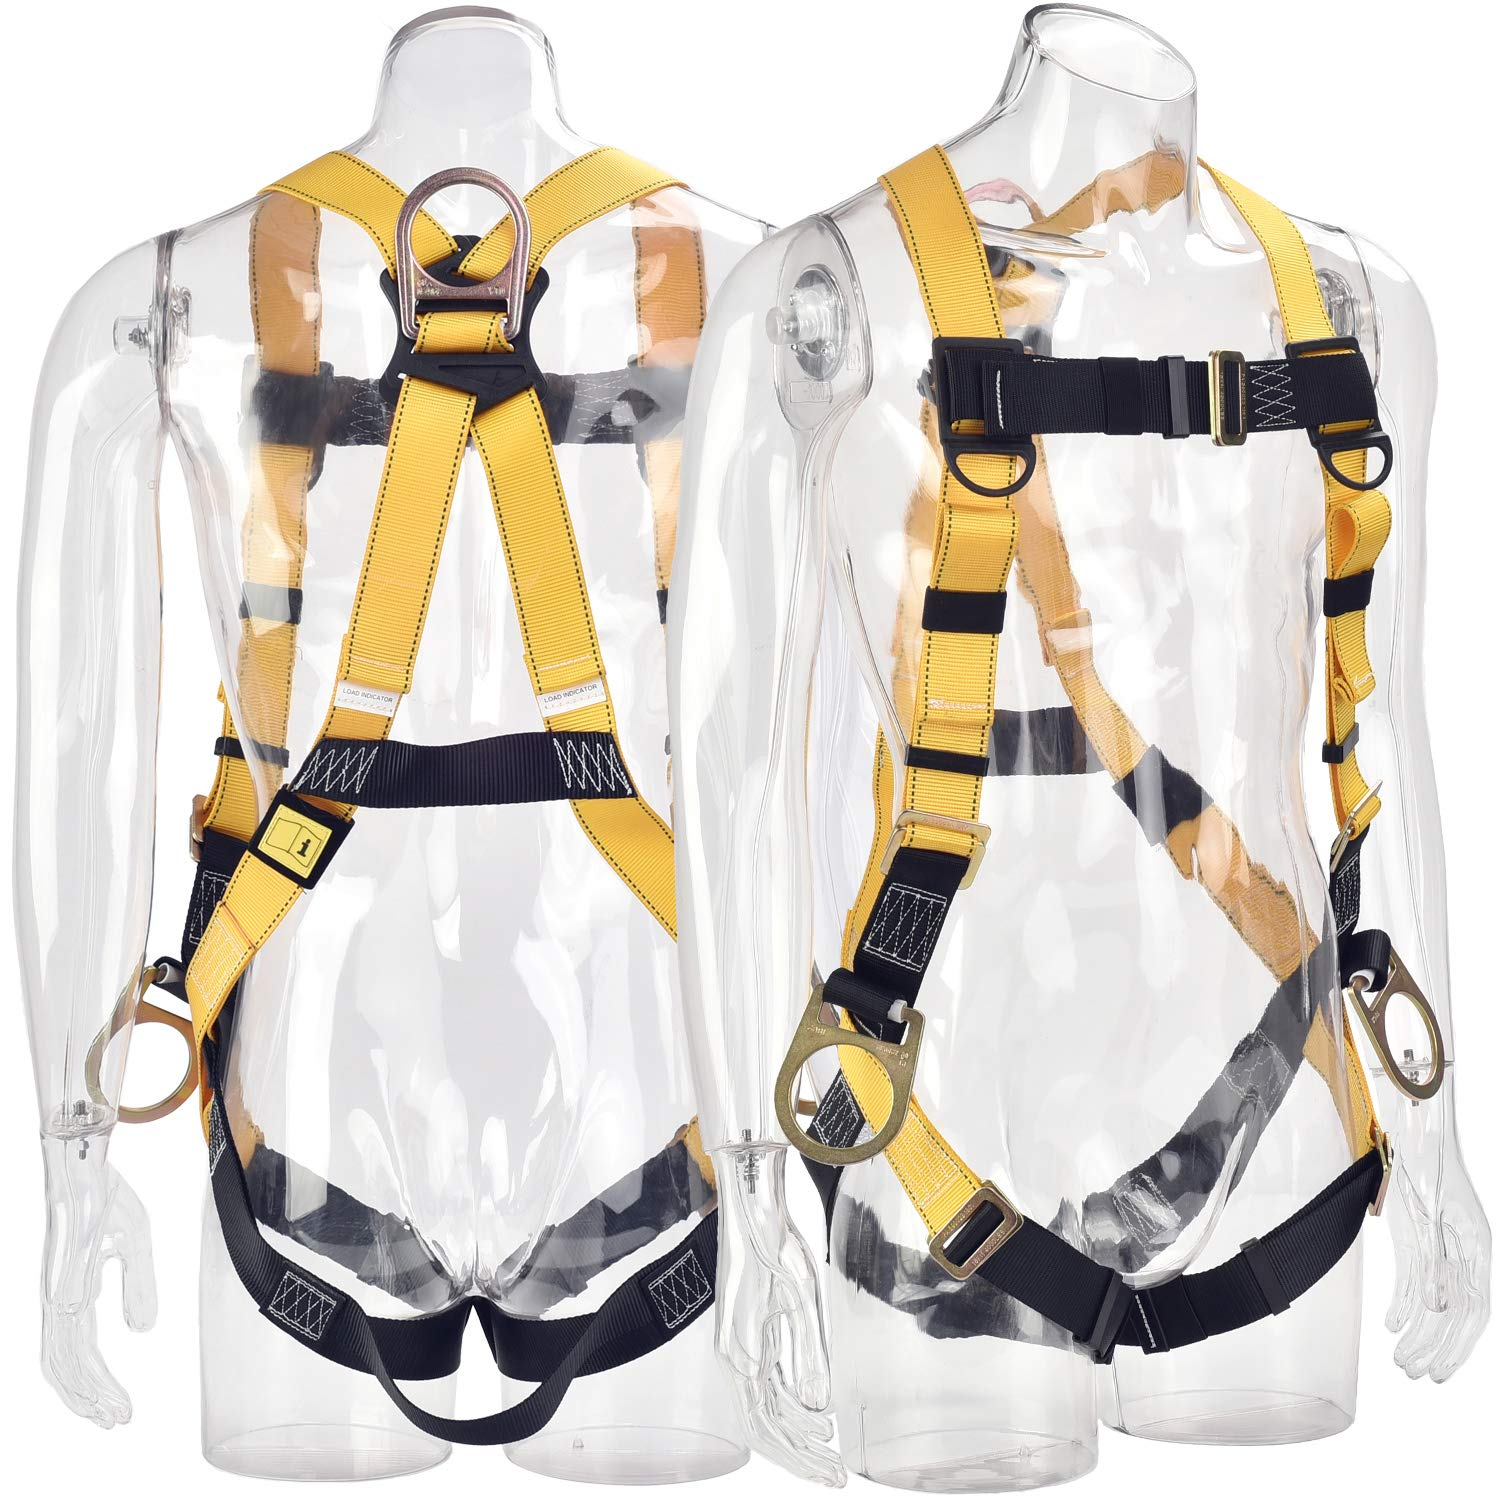 WELKFORDER 3D-Ring Industrial Fall Protection Safety Harness ANSI/ASSE Z359.11-2014 Certified Full Body Personal Protection Equipment 5-Point Adjustment Universal 310 lbs by WELKFORDER